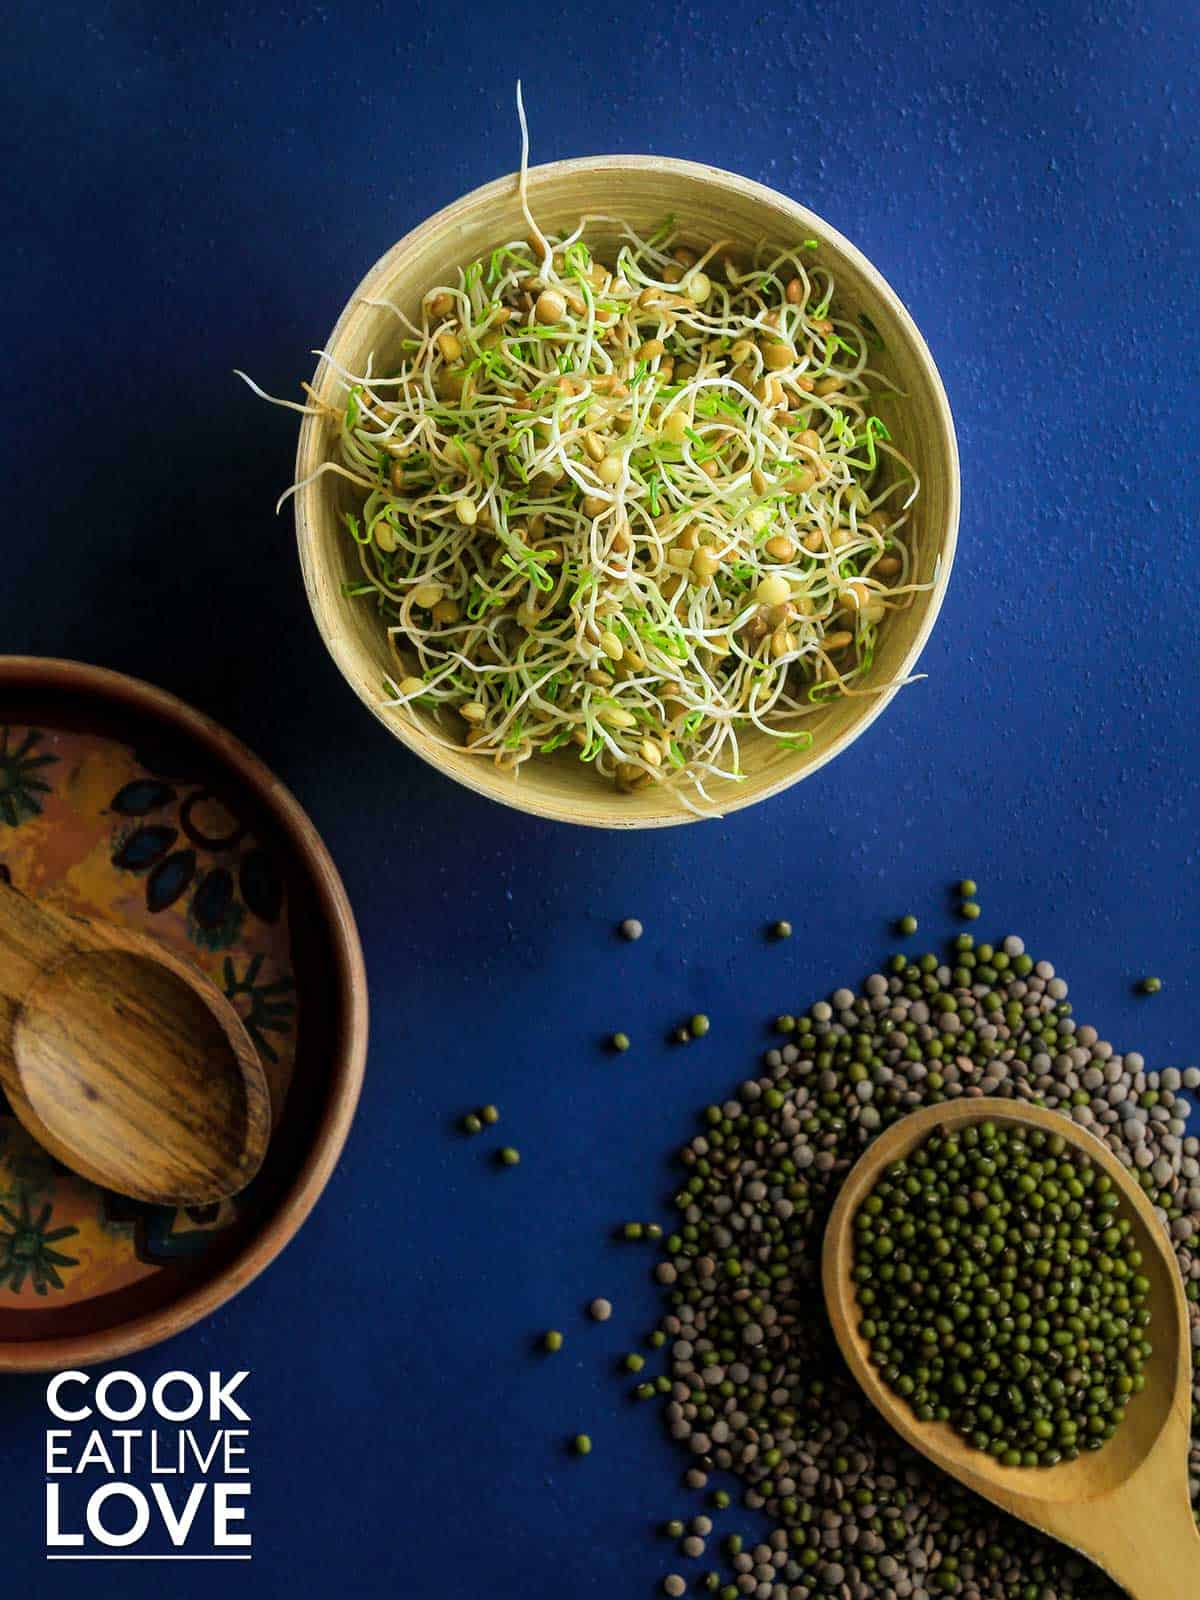 Bowl of sprouts after growing them and some dried lentils and mung beans on the table